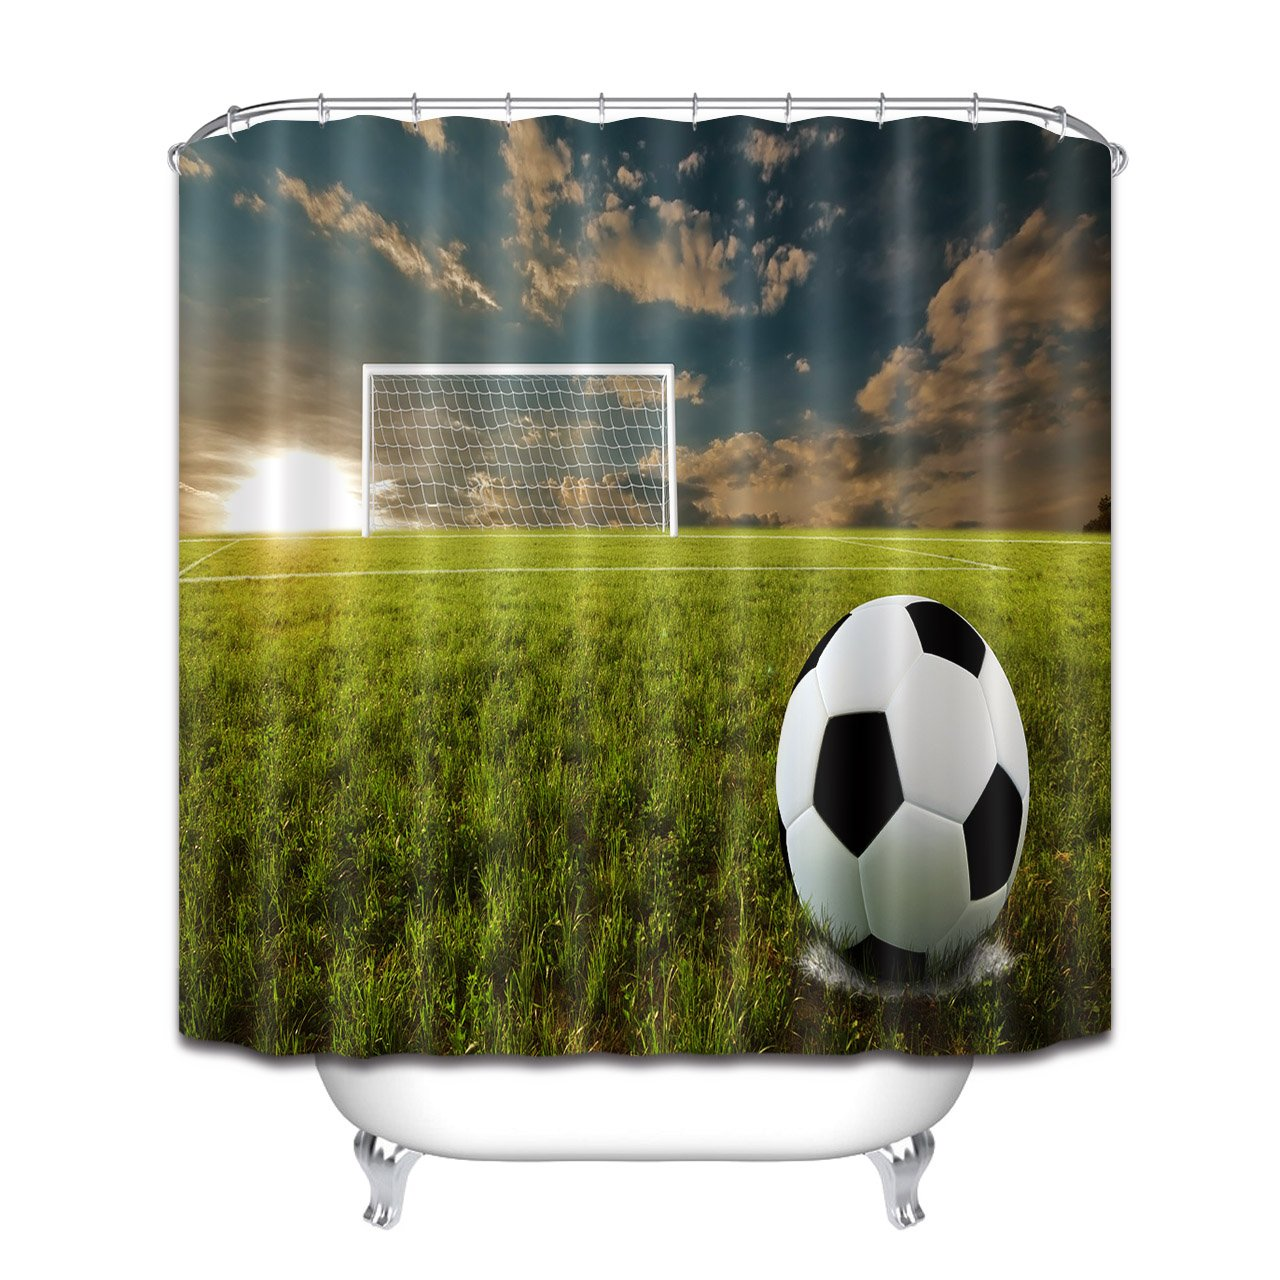 Amazon LB Soccer Shower CurtainSports Decor Collection72x72 Inches World Cup Theme Football Fabric For BathroomSoccer Decorations Presents With 12